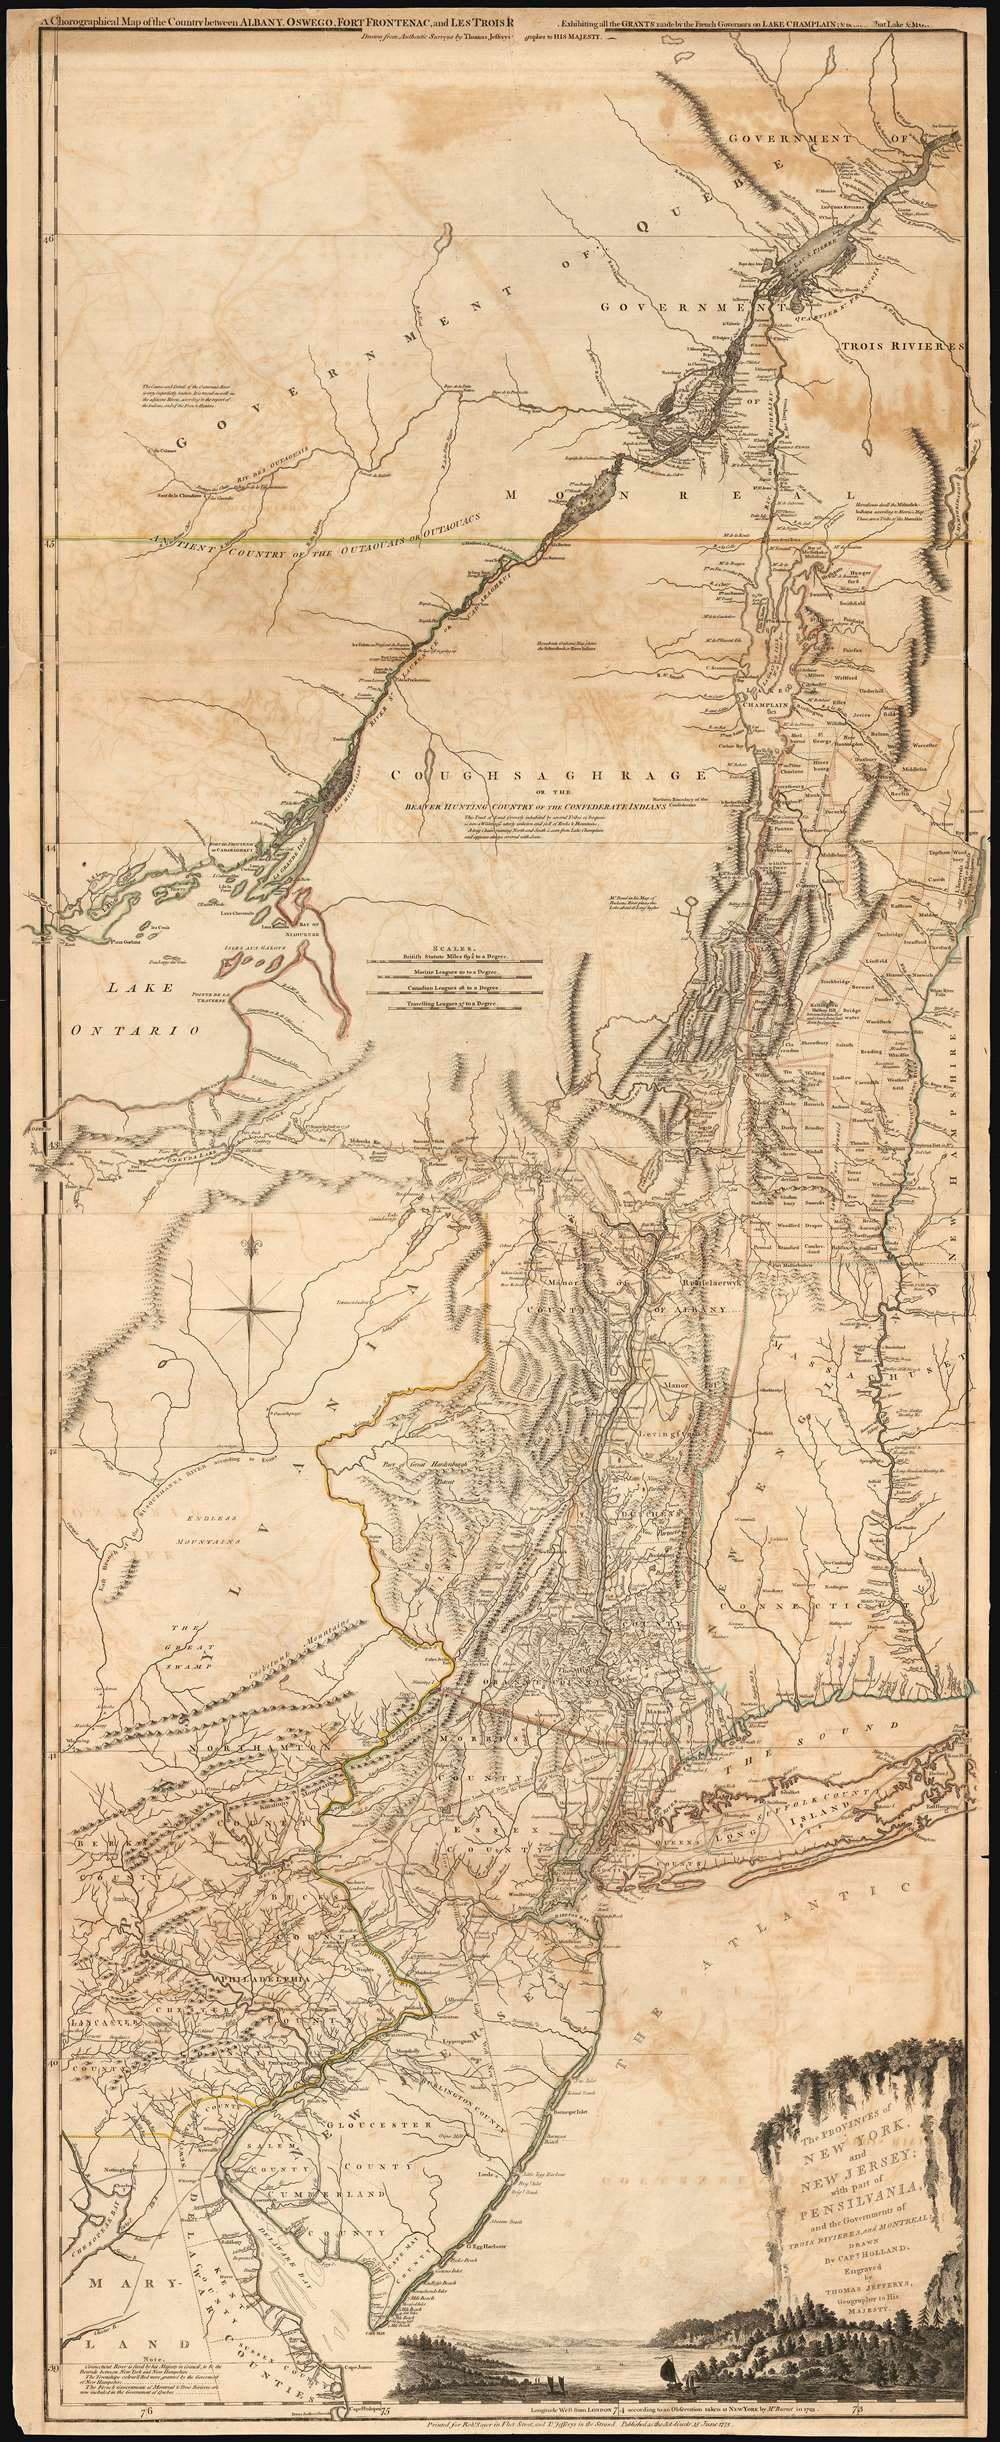 Details about 1775 Jefferys-Holland Map of New York, New Jersey, Vermont,  Hudson Valley